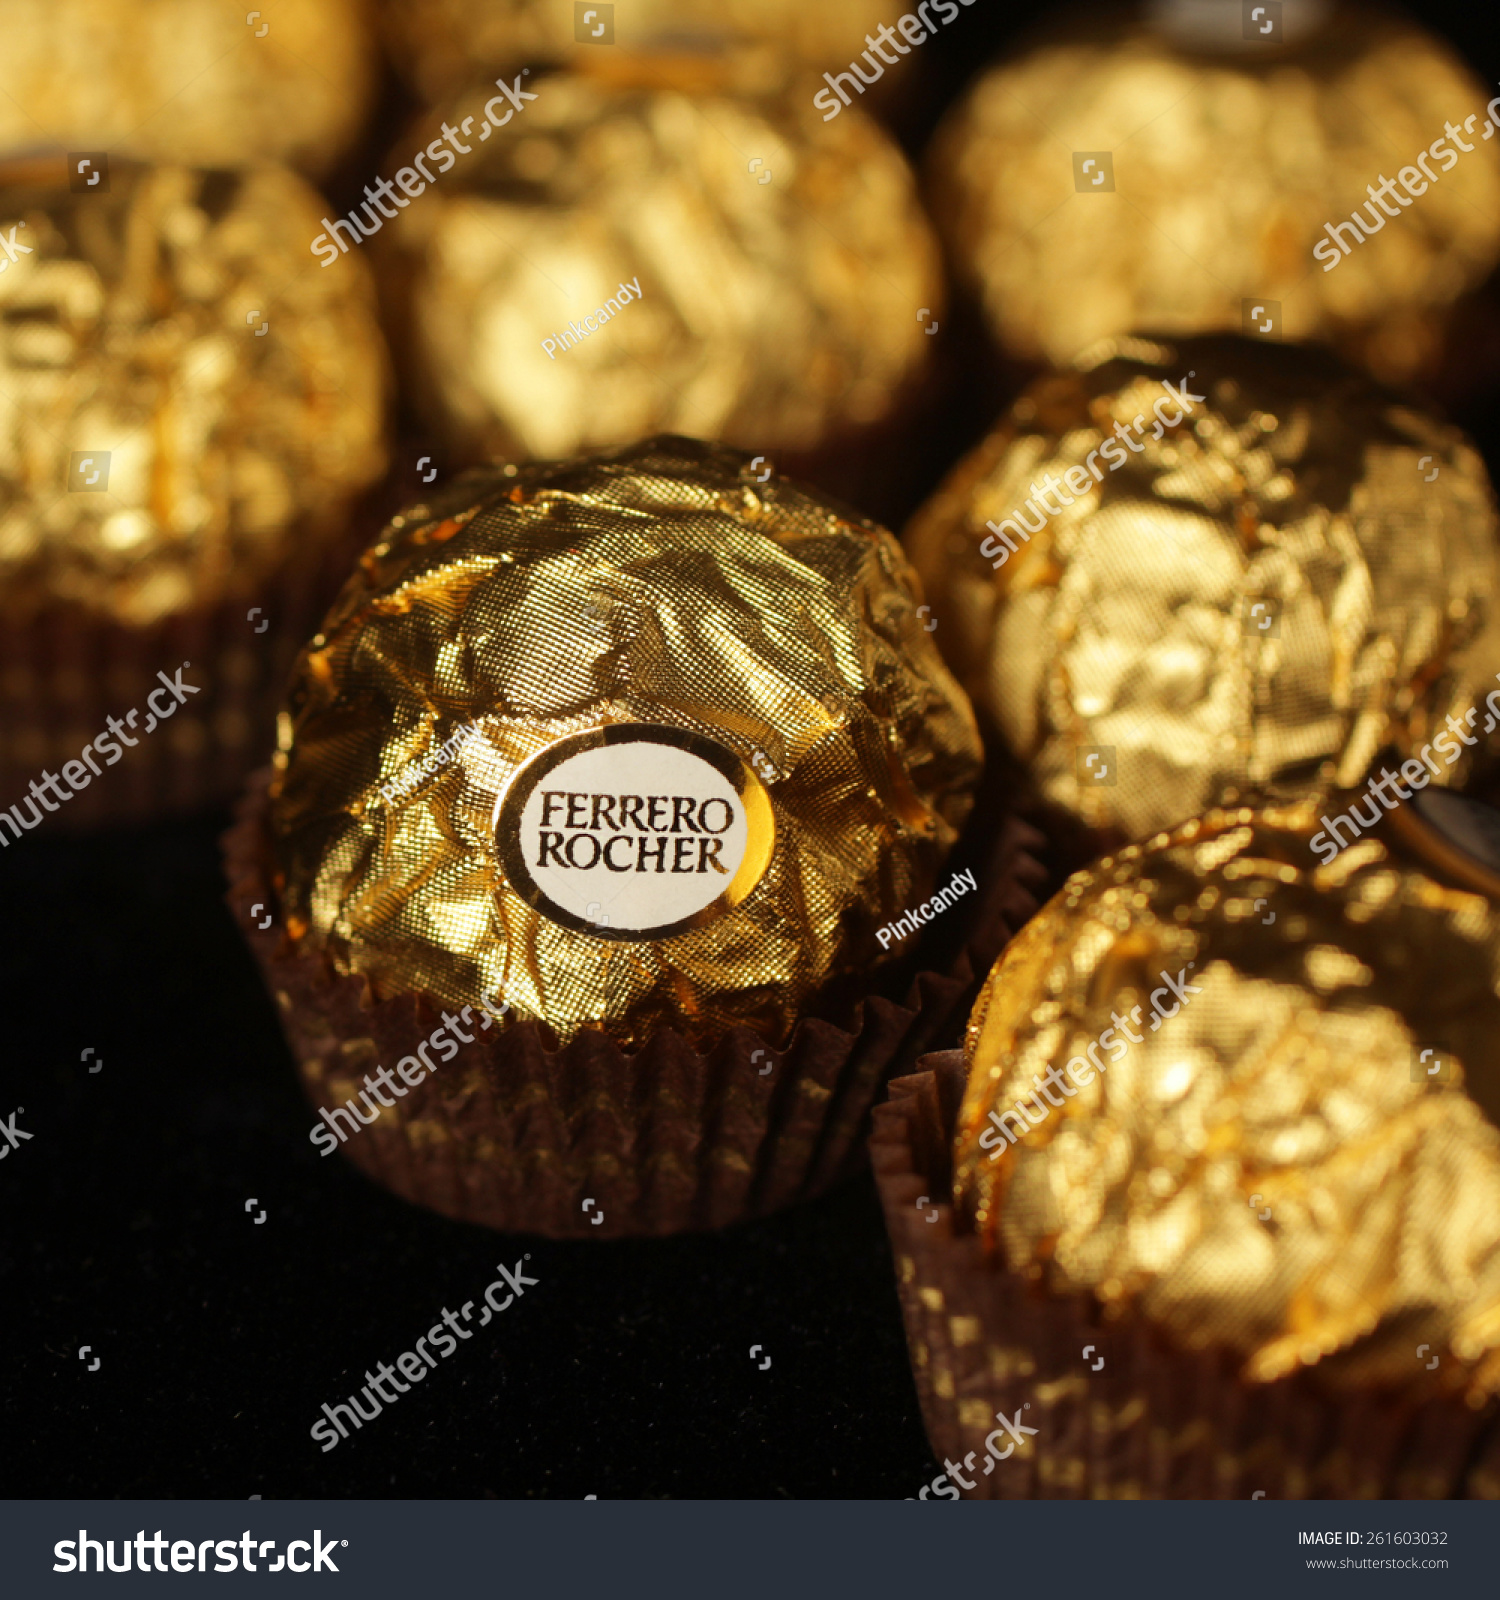 Ferrero Rocher Stock Symbol Image Collections Definition Of Symbolism T24 Coklat 24pcs Montreal Canada February 05 2015 Photo Edit Now